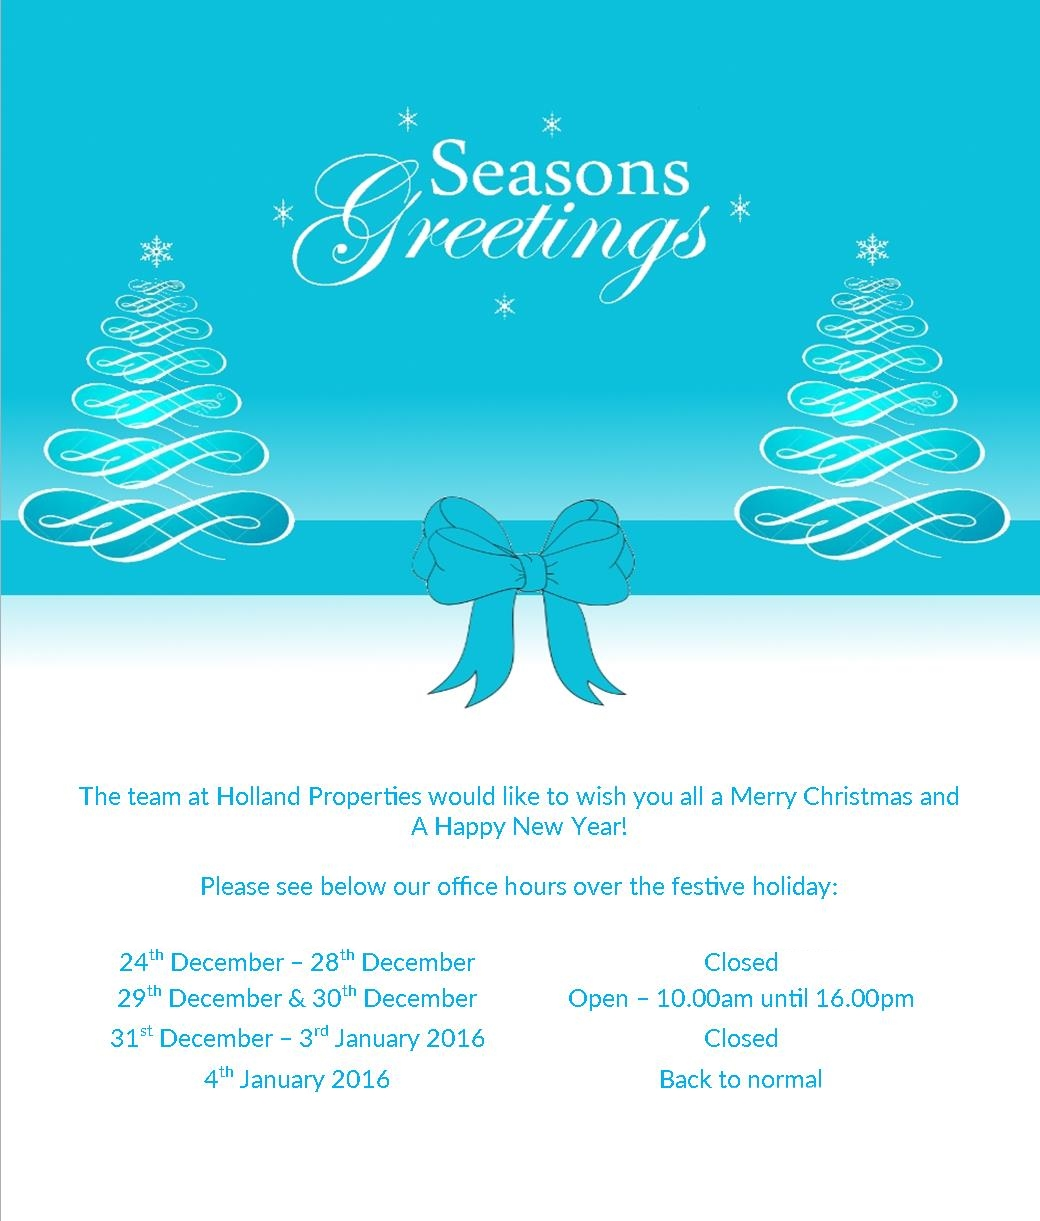 Seasons greetings from holland propertiesristmas opening times please see below our office hours over the festive holiday m4hsunfo